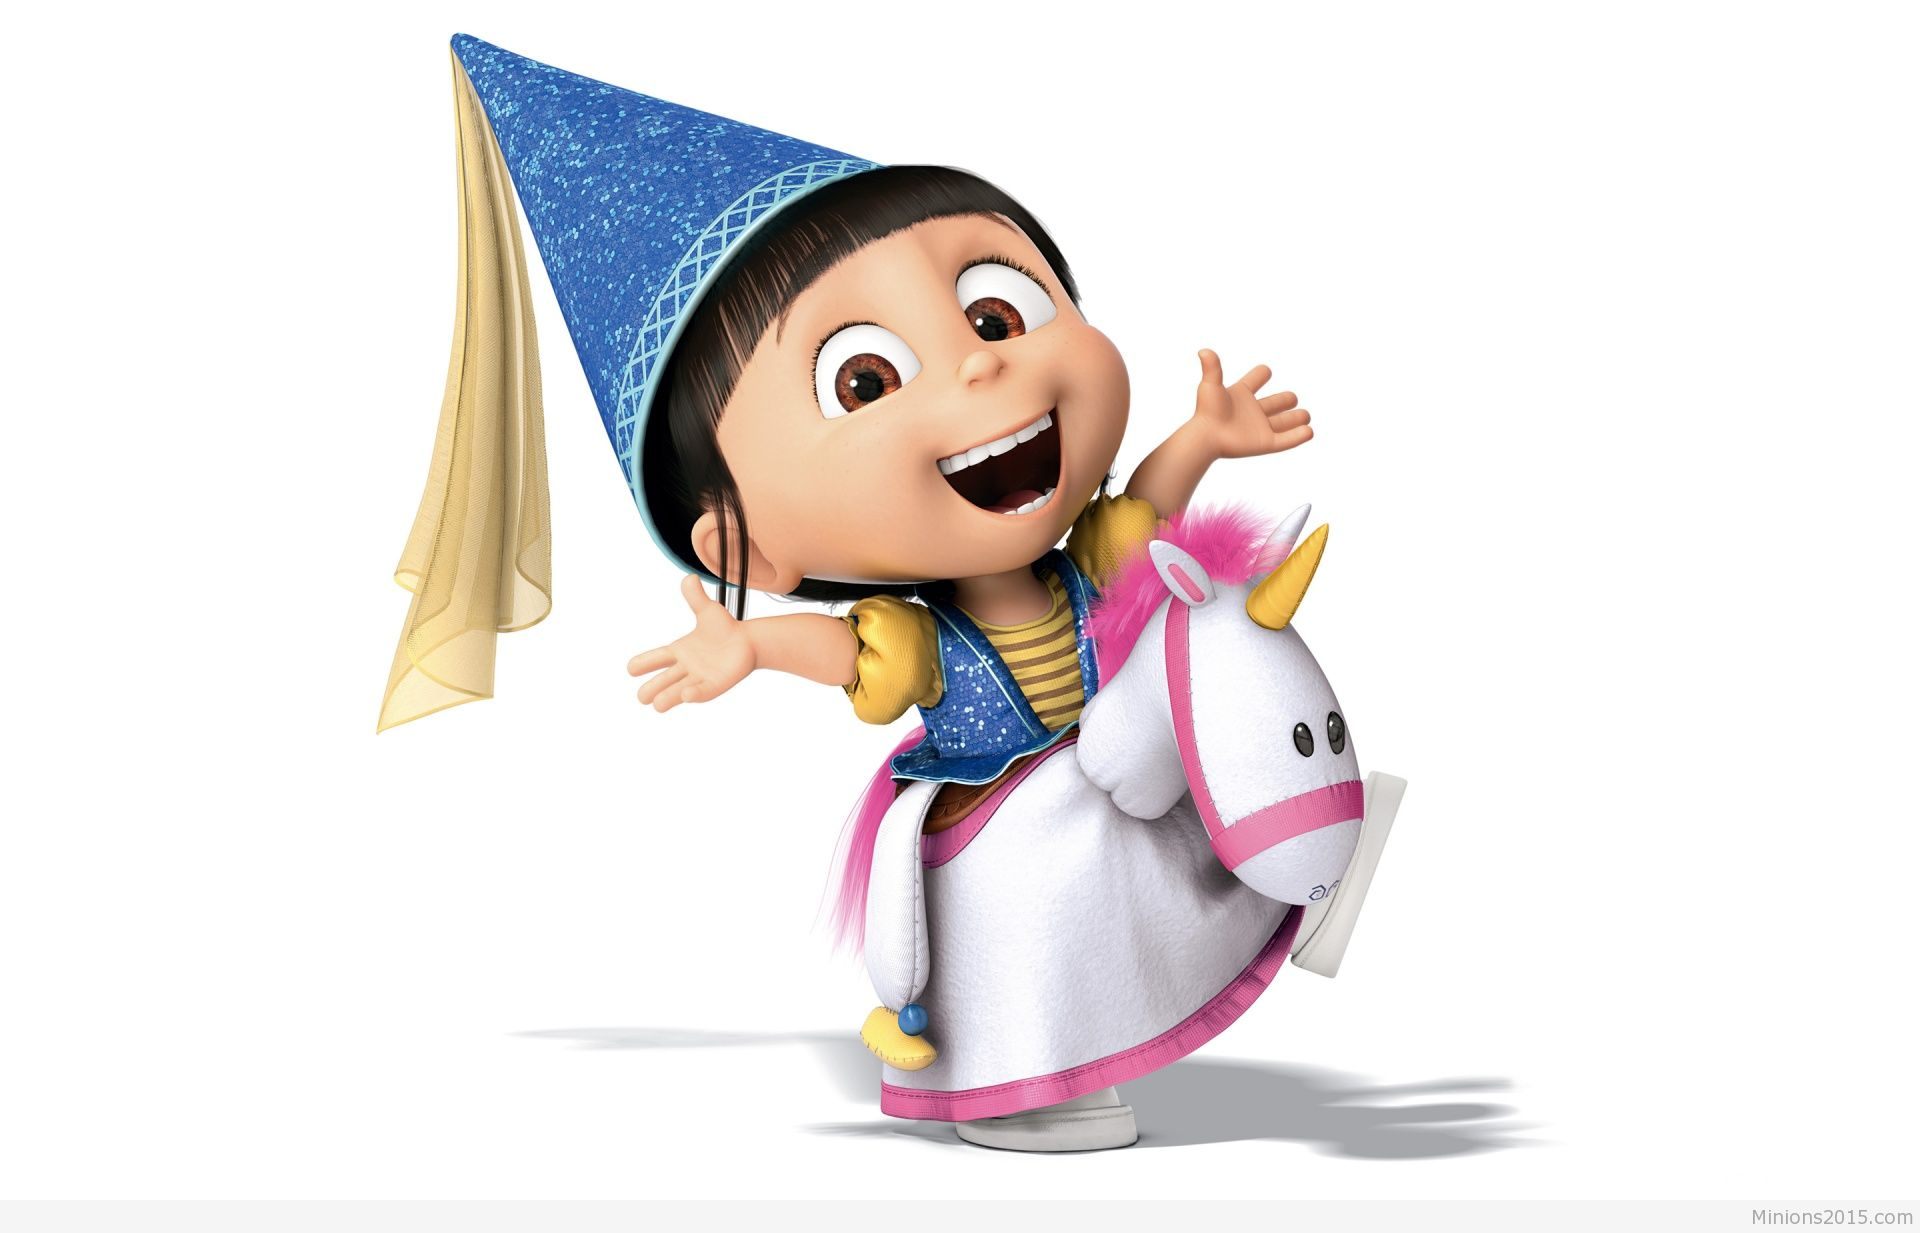 Agnes despicable me images agnes hd wallpaper and background agnes despicable me images agnes hd wallpaper and background photos voltagebd Image collections